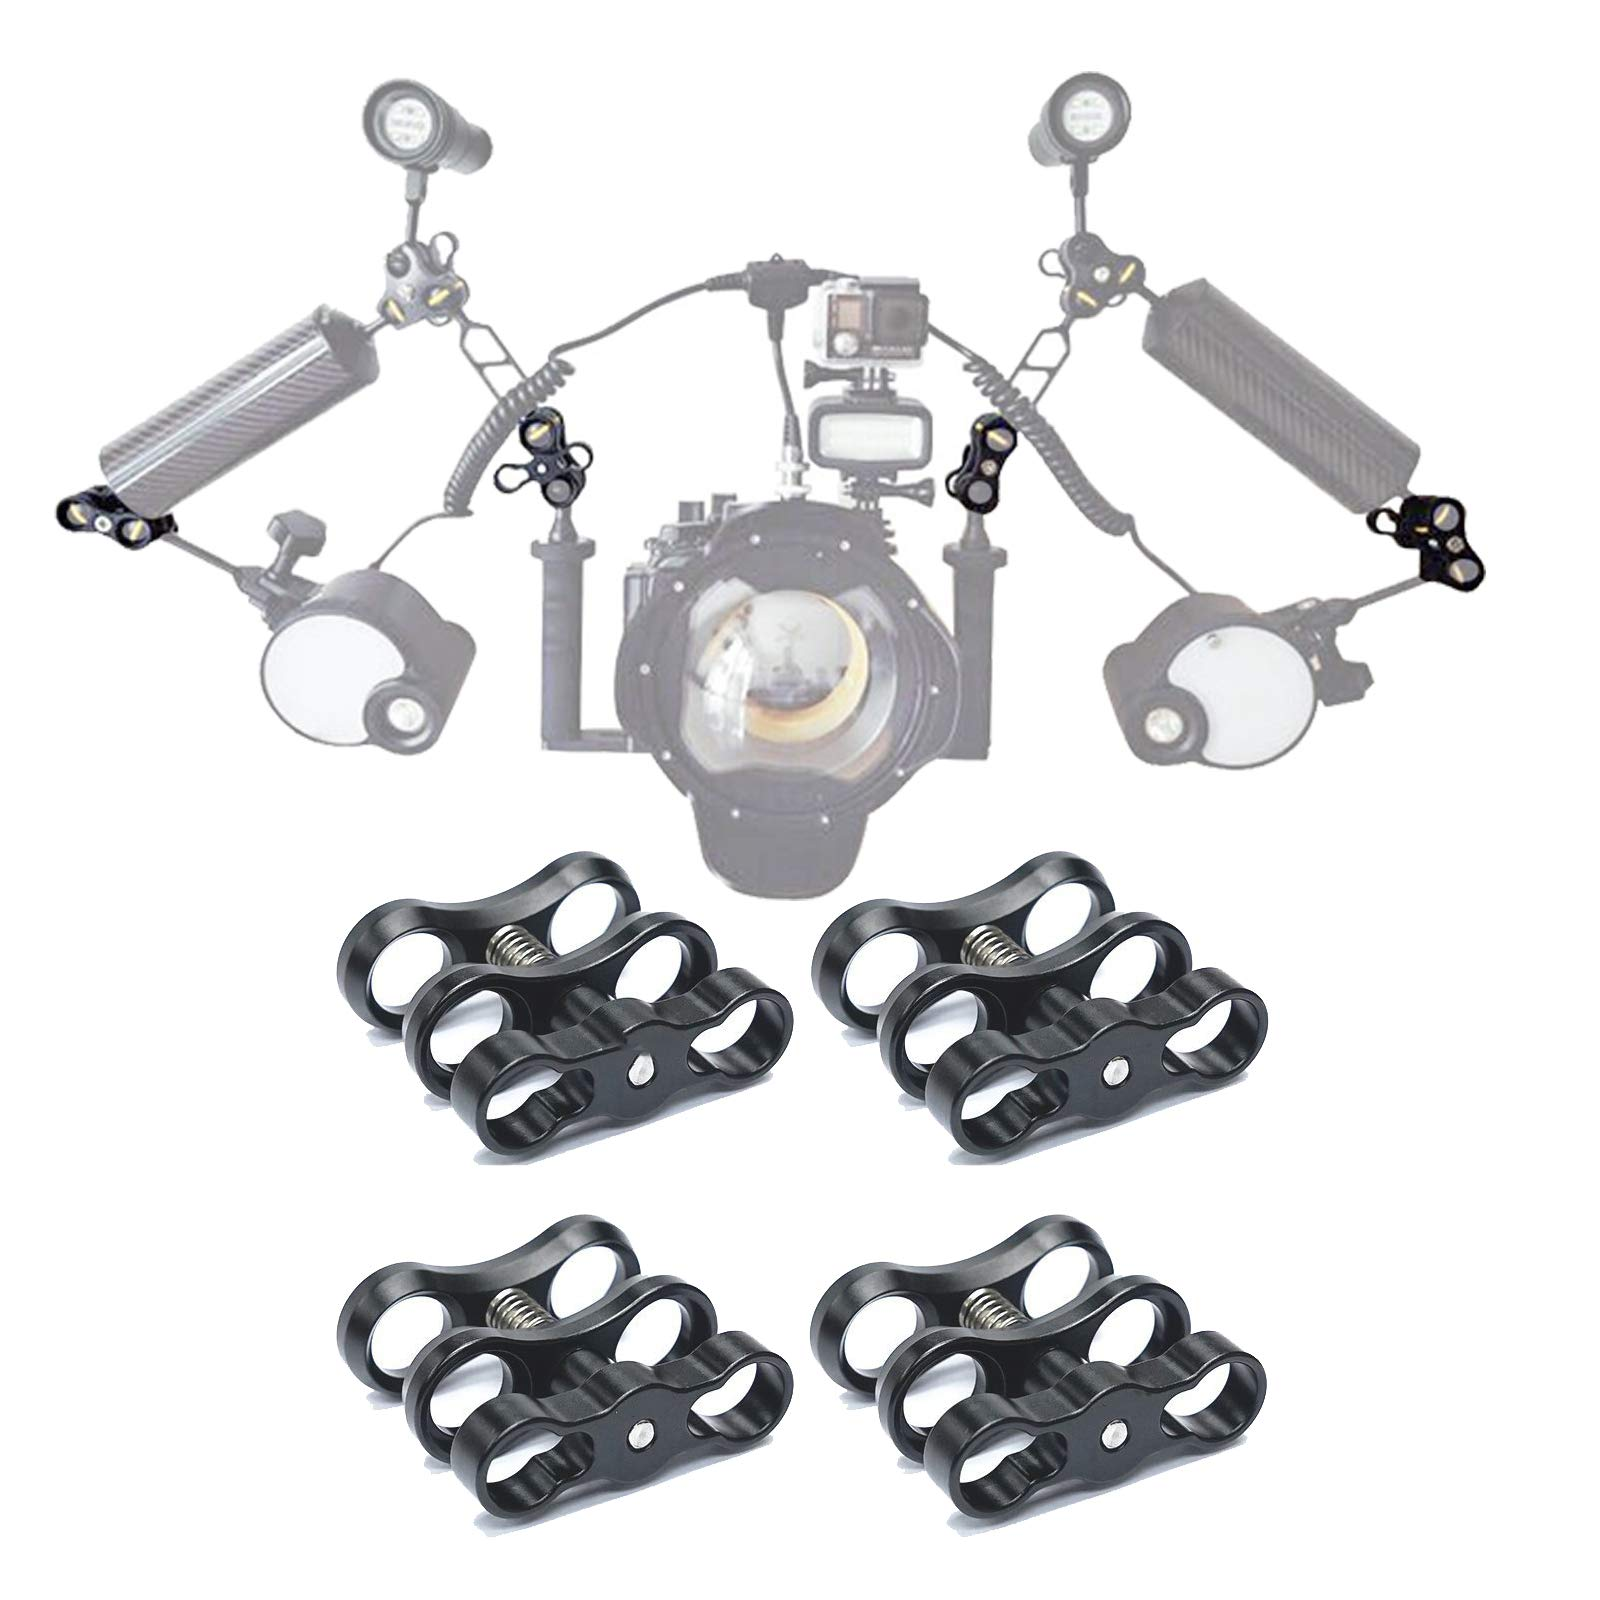 WLPREOE 4 PCS x 1'' Inch Aluminum Standard Ball Clamp Mount for Underwater Diving Light Arm System,Work with Ram Mounts by WLPREOE